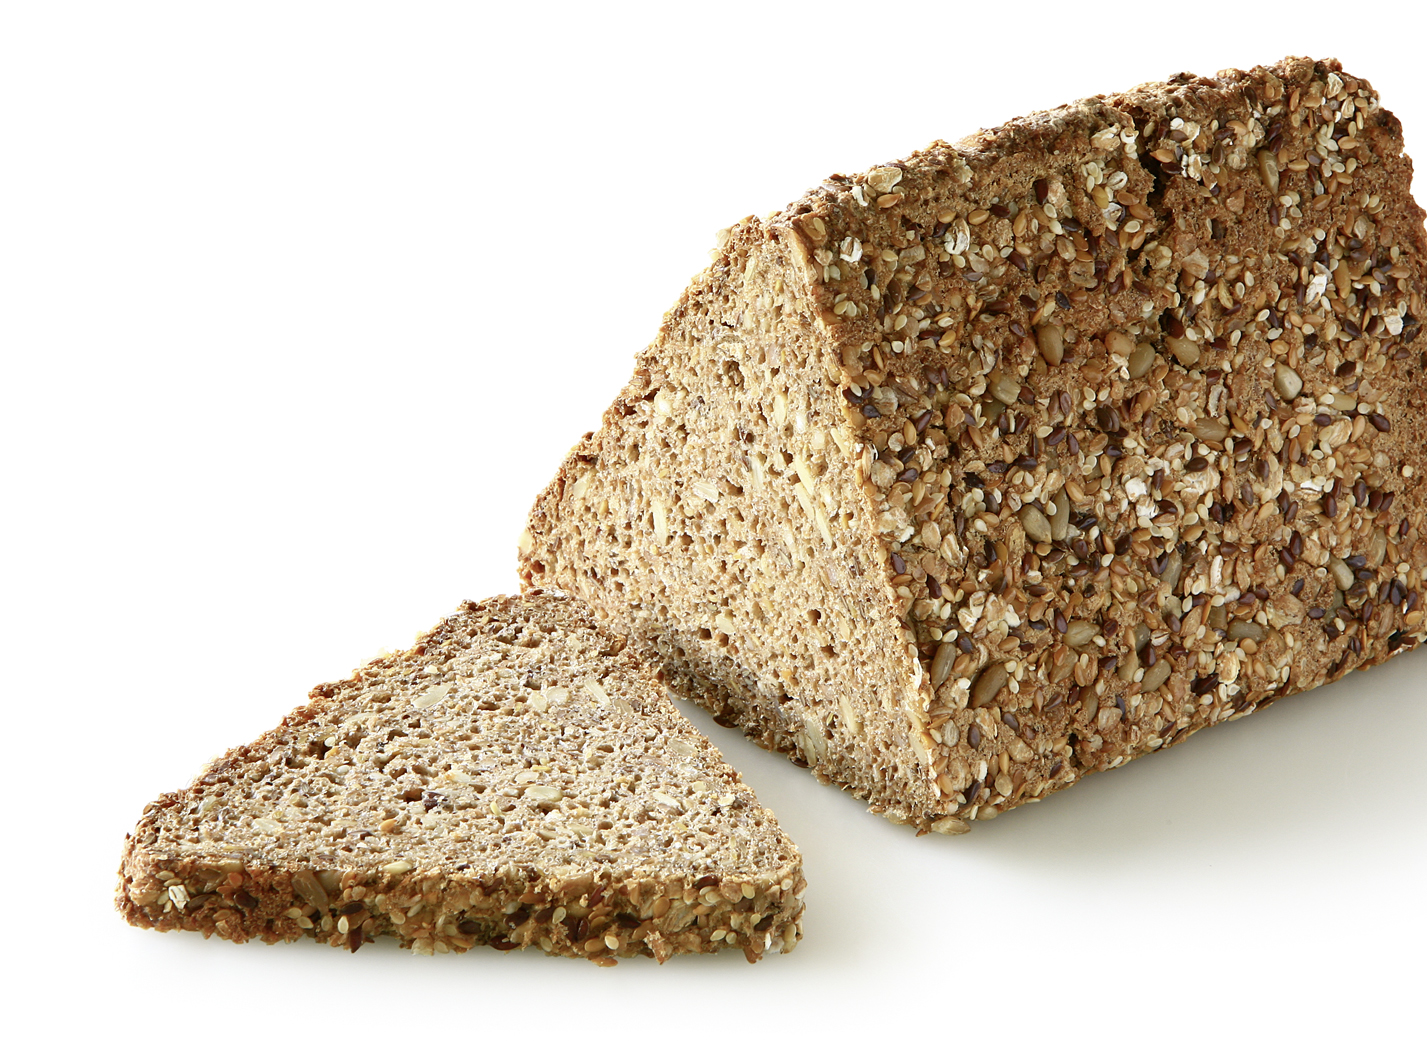 Grain Edge - Wholemeal multigrain bread baked in a triangular form/ with sunflower seeds, linseeds and sesame seeds length: 17 cm